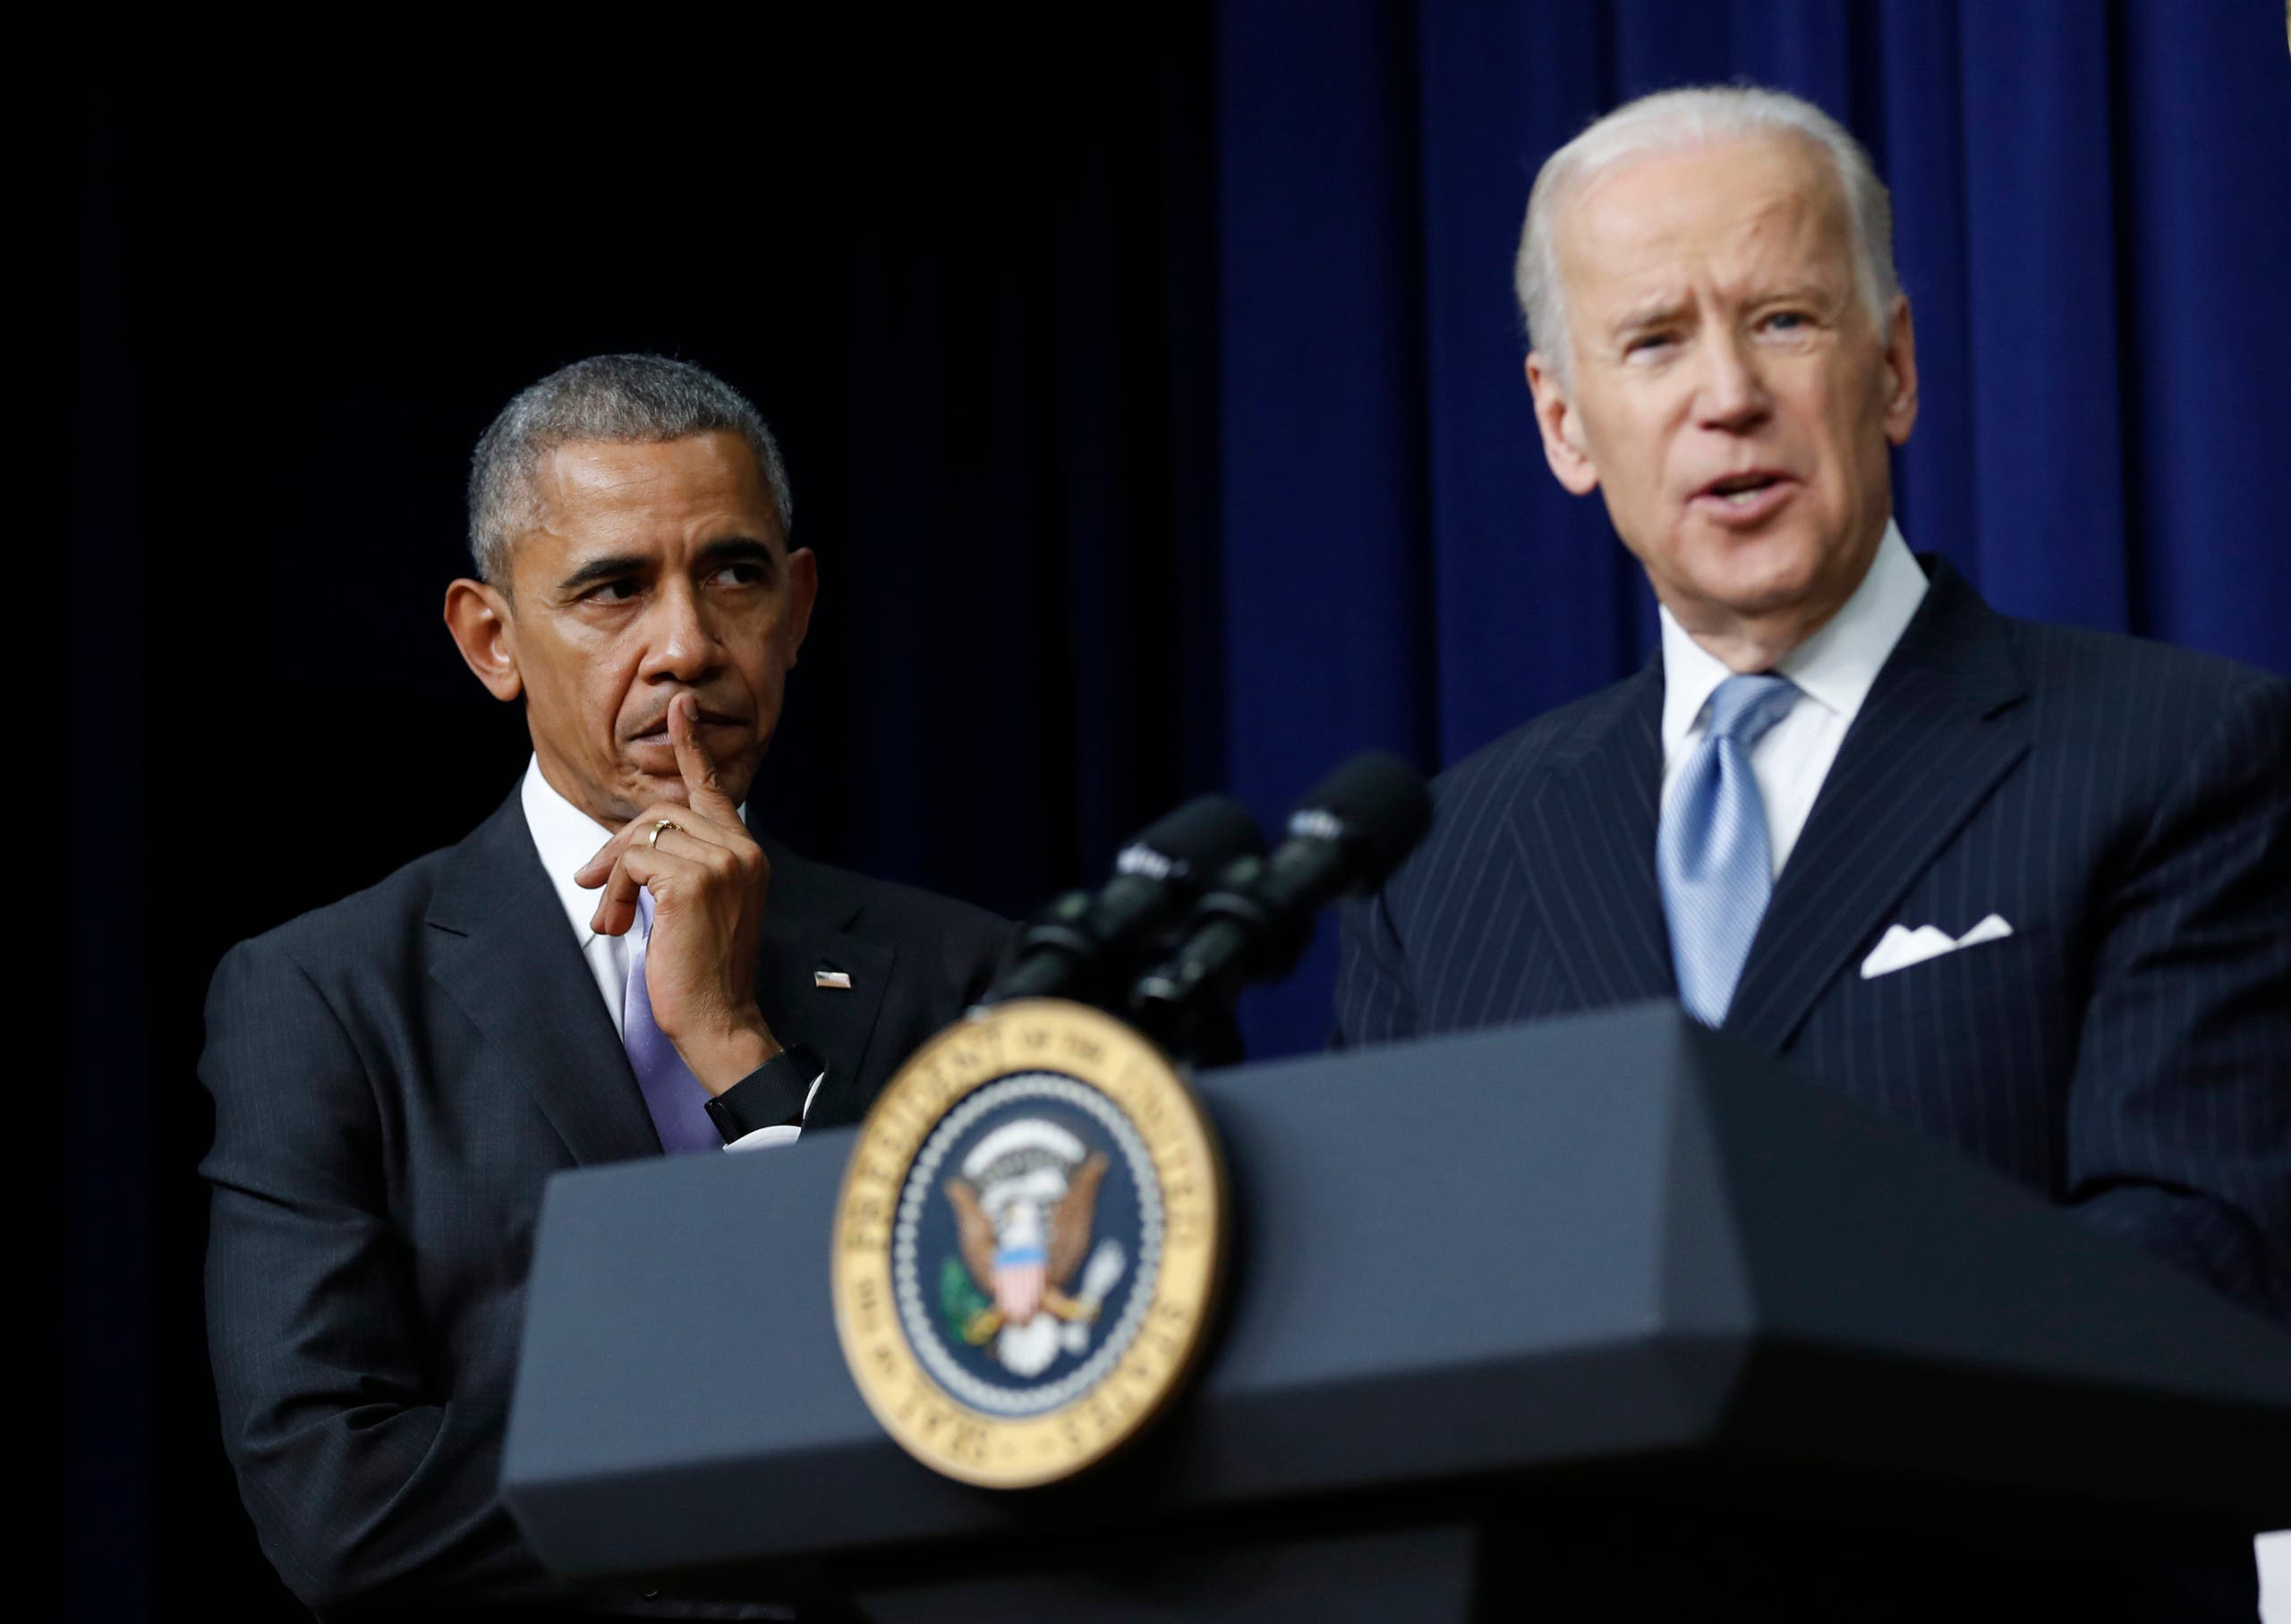 Former President Barack Obama listens as Vice President Joe Biden speaks in the South Court Auditorium in the Eisenhower Executive Office Building on the White House complex in Washington. (File photo: AP)